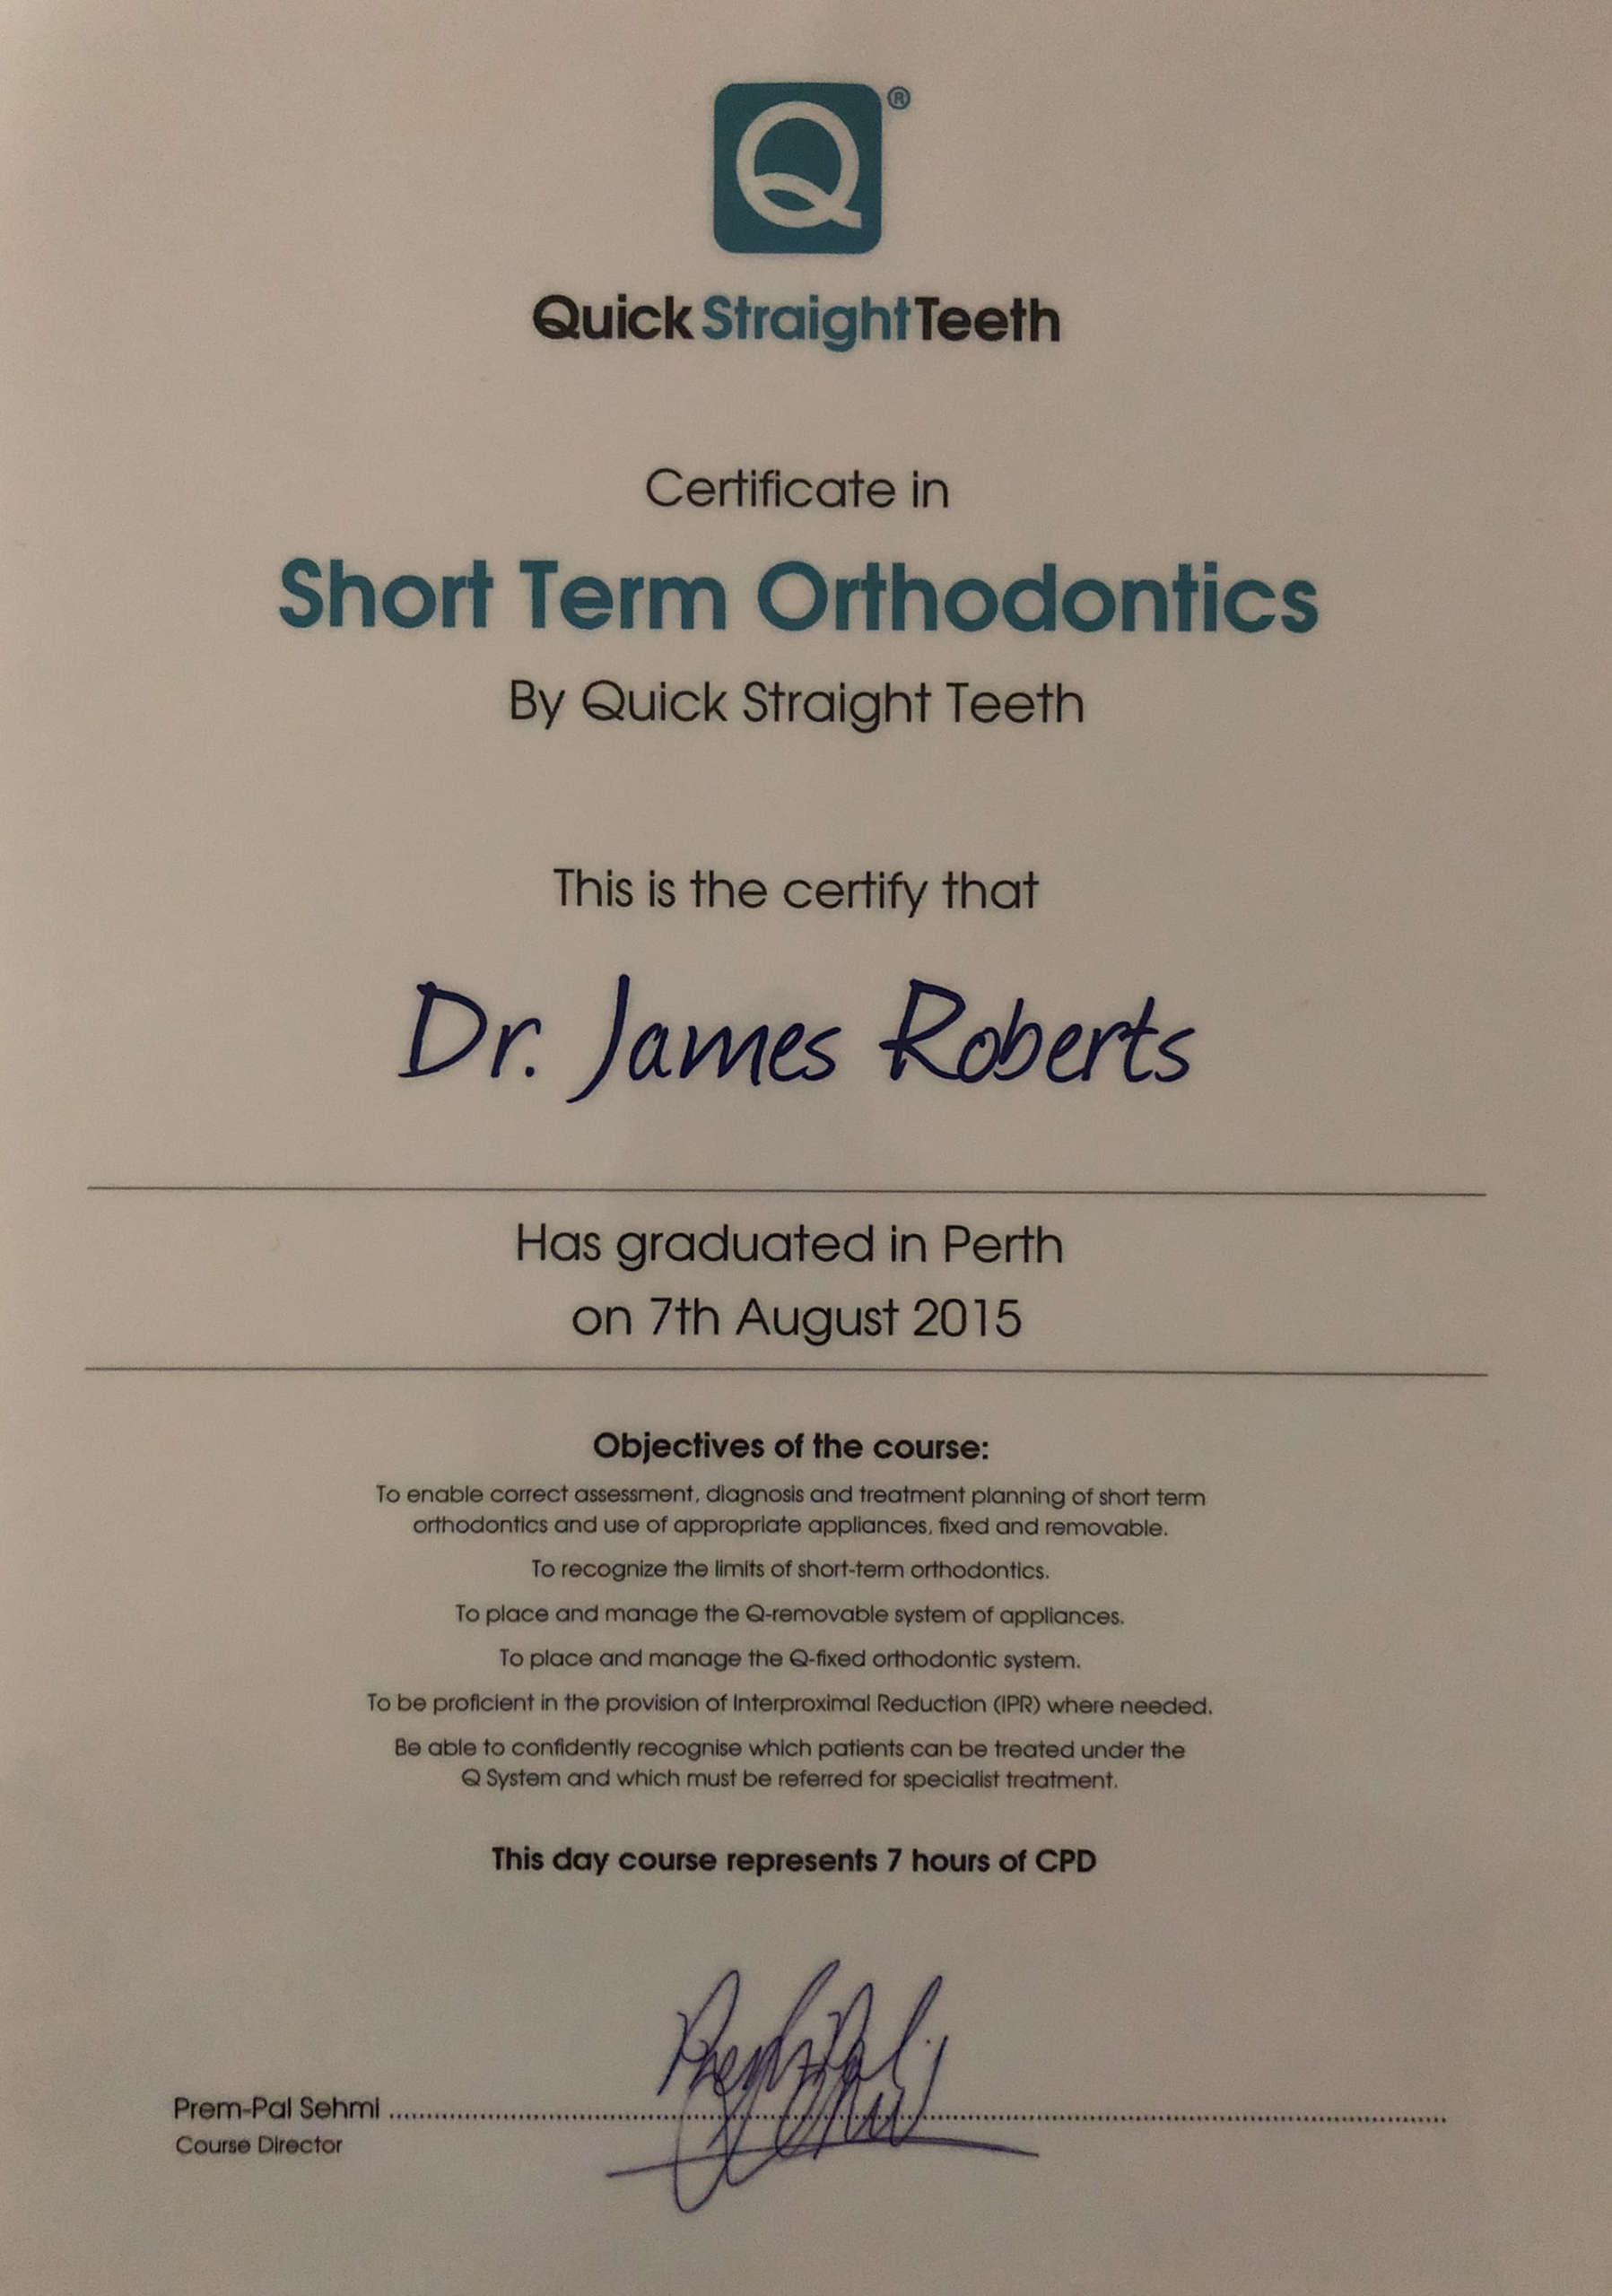 August 2015 – Received the Certificate in Short Term Orthodontics by Quick Straight Teeth in Perth, Australia